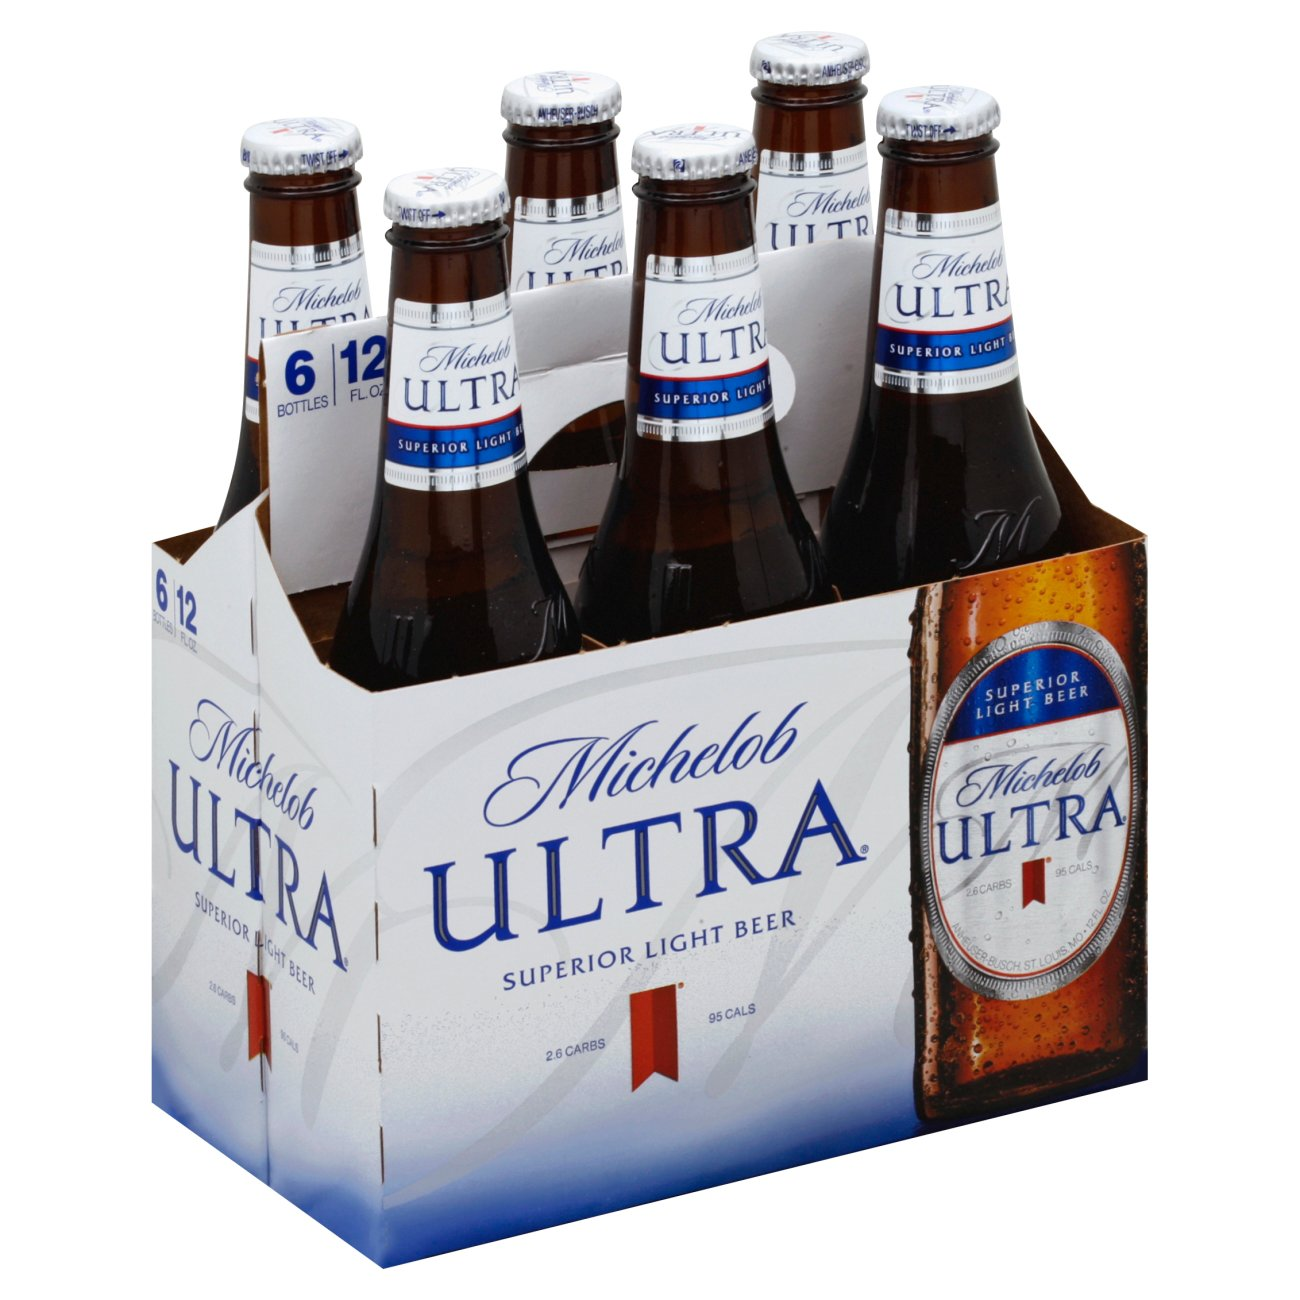 High Quality Michelob Ultra Beer 12 Oz Bottles U2011 Shop Michelob Ultra Beer 12 Oz Bottles  U2011 Shop Michelob Ultra Beer 12 Oz Bottles U2011 Shop Michelob Ultra Beer 12 Oz  Bottles ... Pictures Gallery